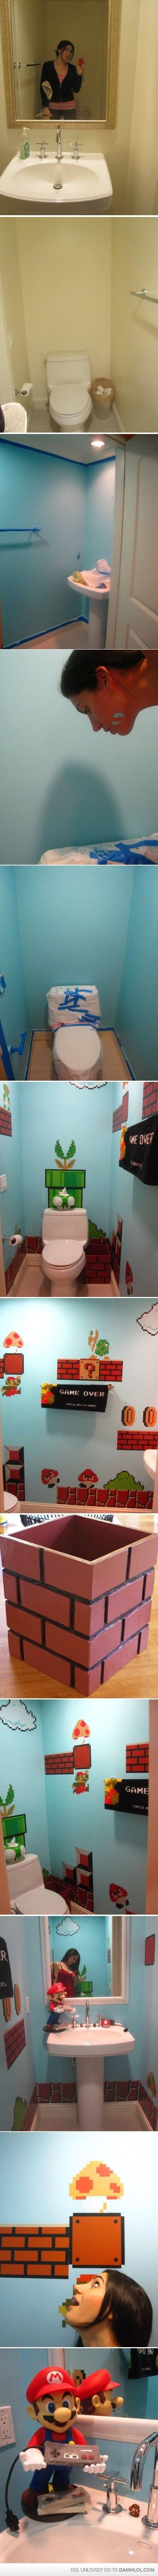 Dream BathroomBoys Bathroom, Bathroom Makeovers, Kids Bathroom, Half Bath, Dreams Bathroom, Mario Bathroom, Bathroom Ideas, Mario Bros, Super Mario